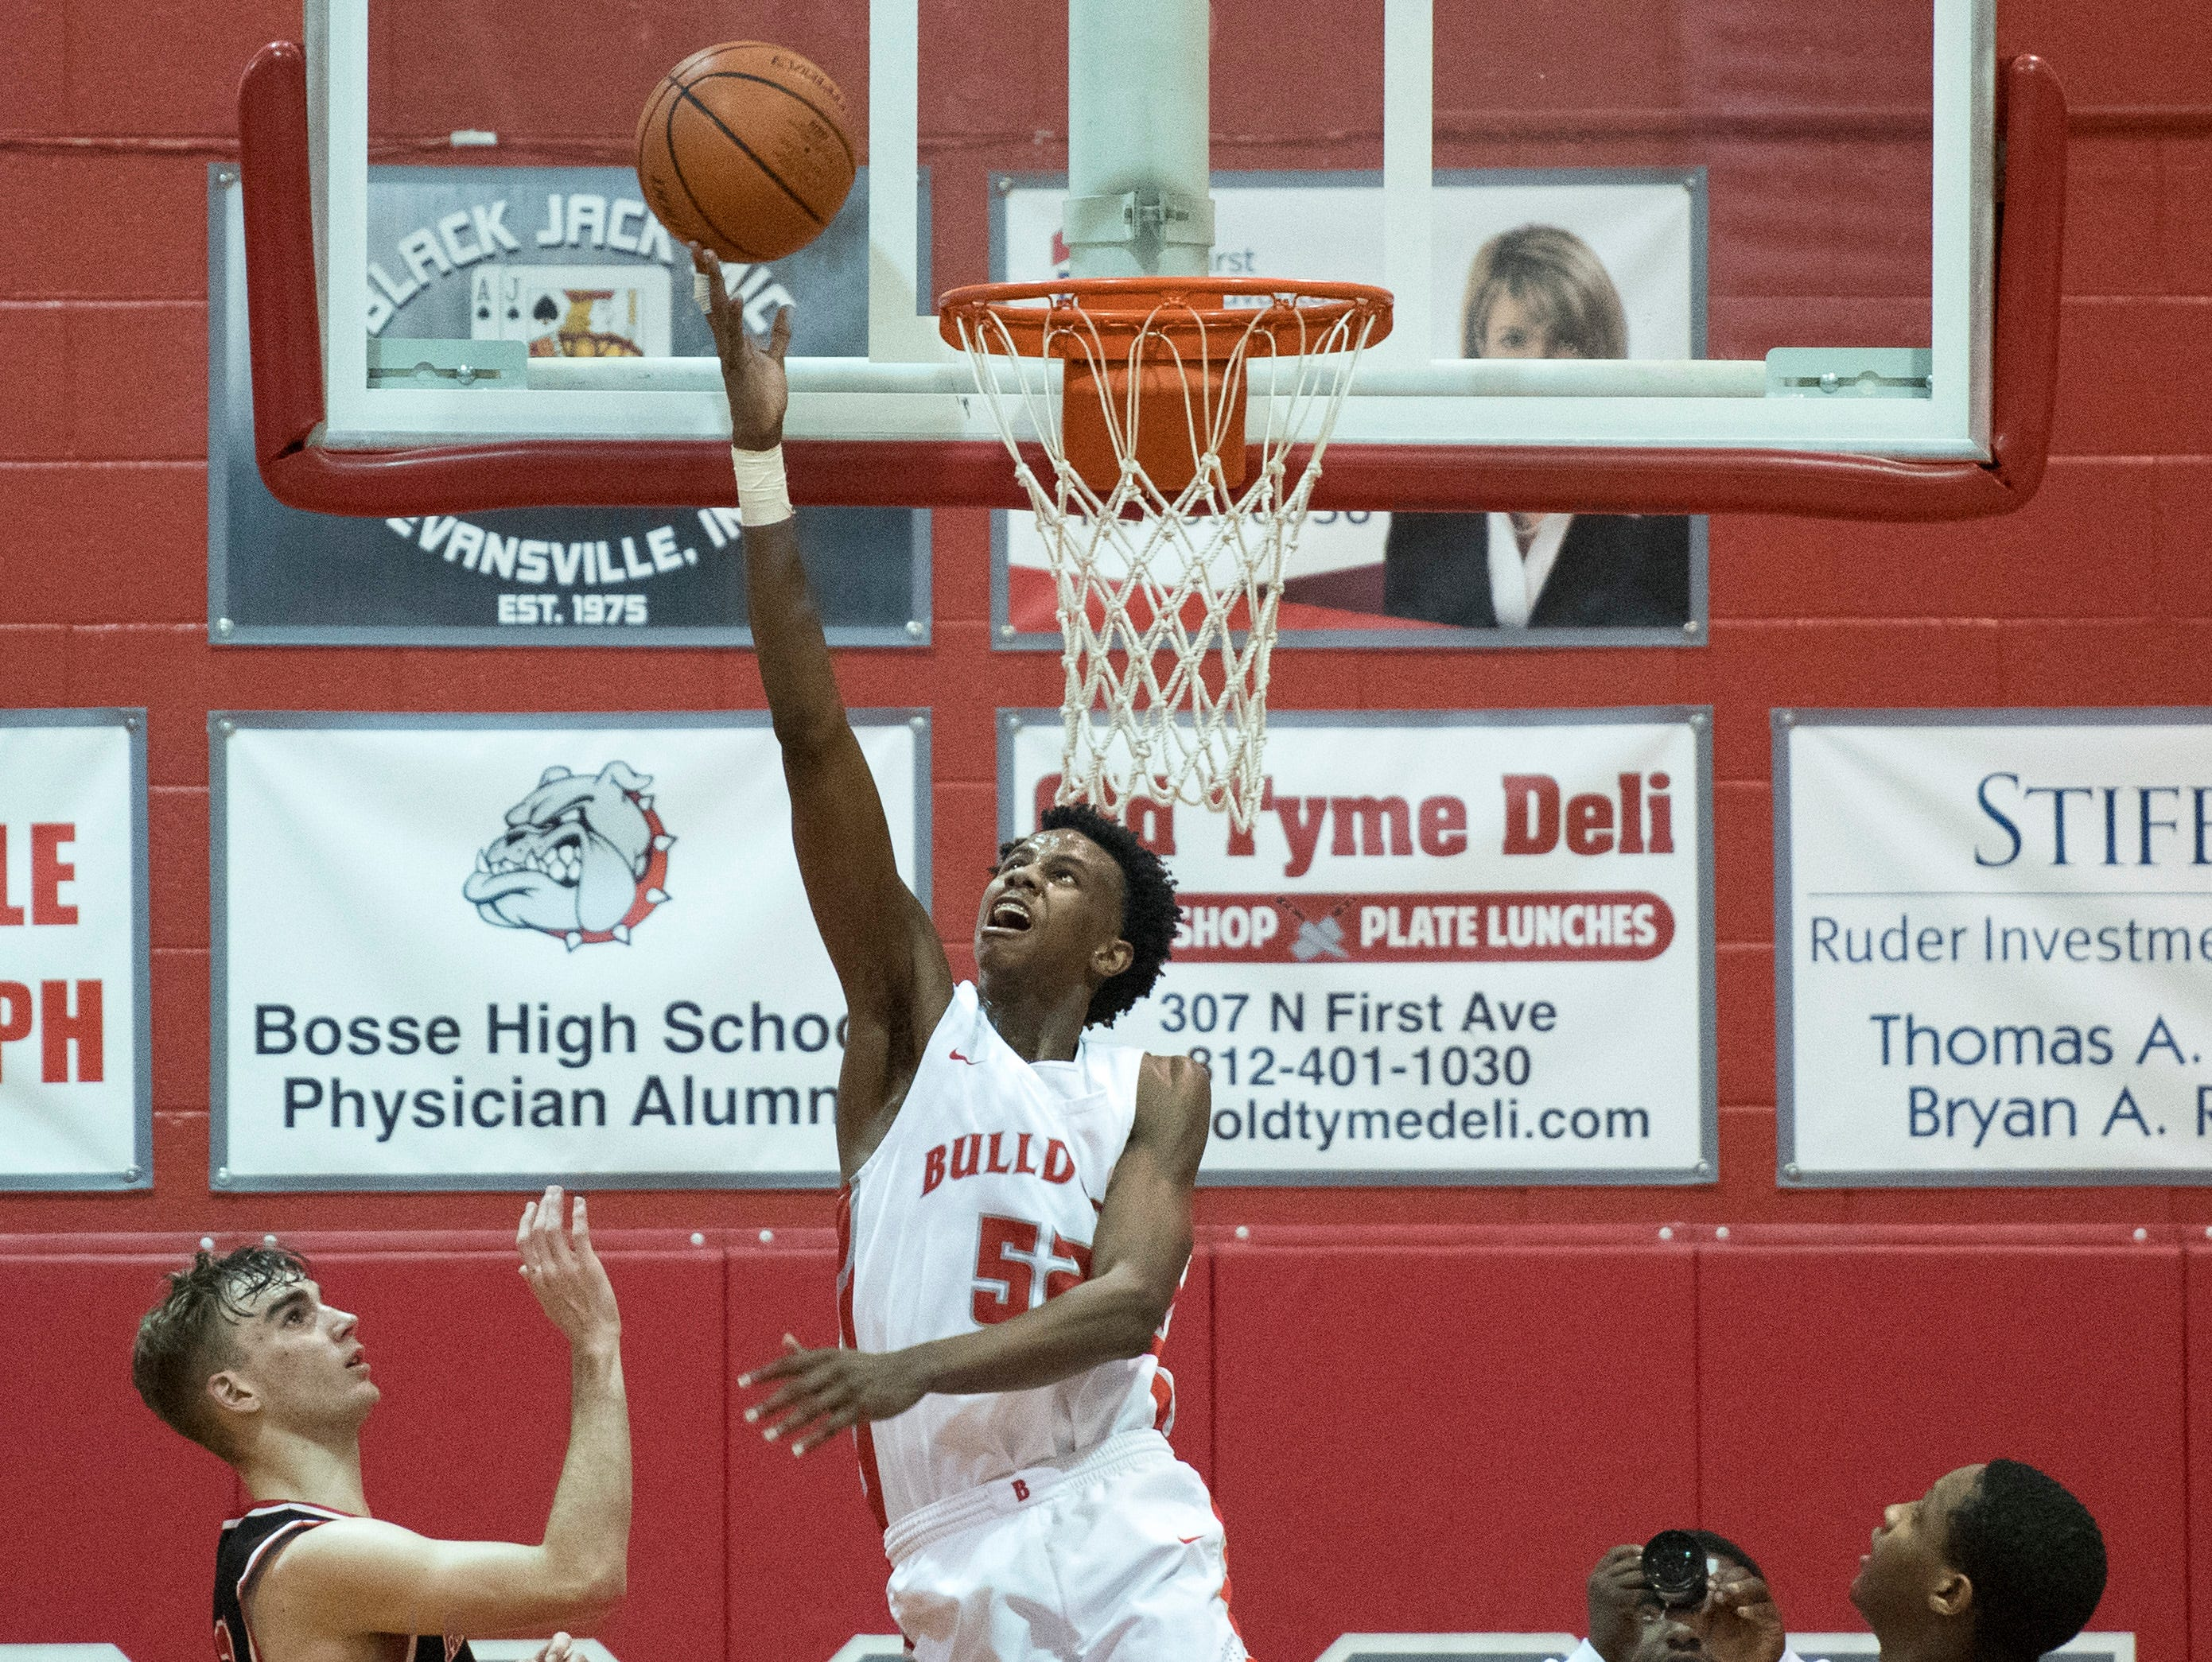 Bosse's Kiyron Powell (52) takes a shot from behind the net during the Harrison vs Bosse game at Bosse High School Tuesday, Feb. 12, 2019. The Bosse Bulldogs won 74-56.